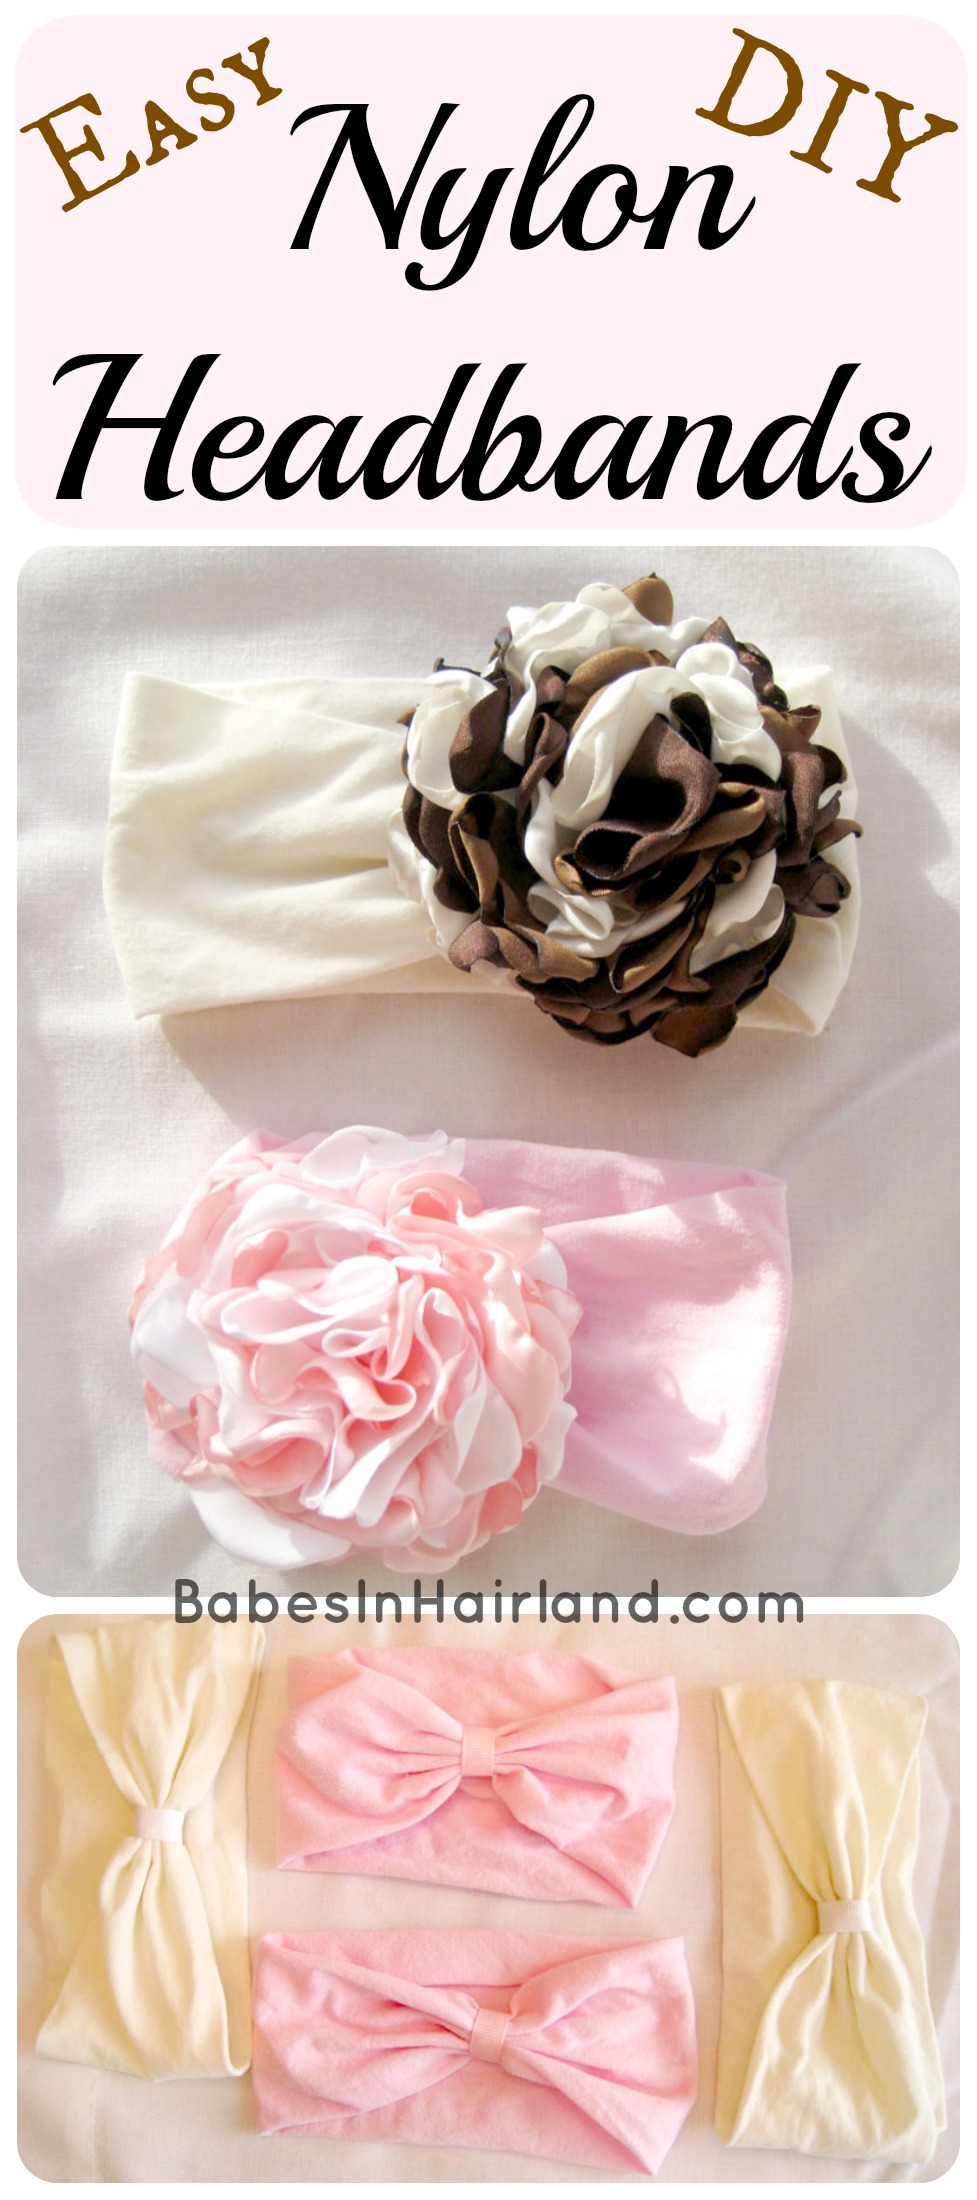 How To Make Flowers Out Of Ribbon For Baby Headbands : flowers, ribbon, headbands, Nylon, Headband, Babes, Hairland